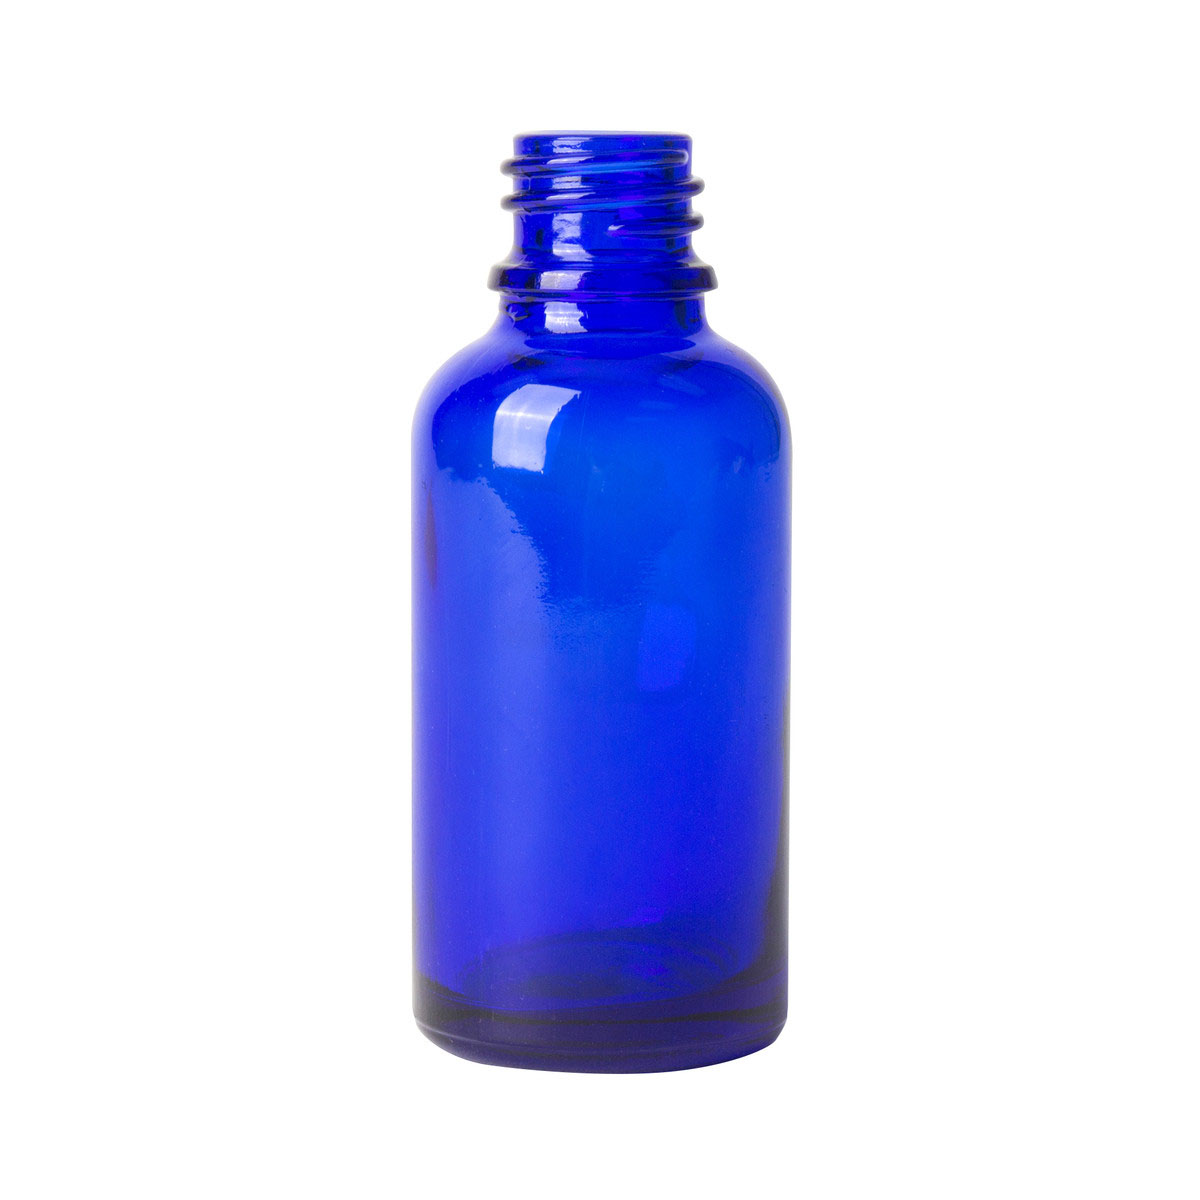 30ml Glass Dropper Bottle In Cobalt Blue (330 Qty.)